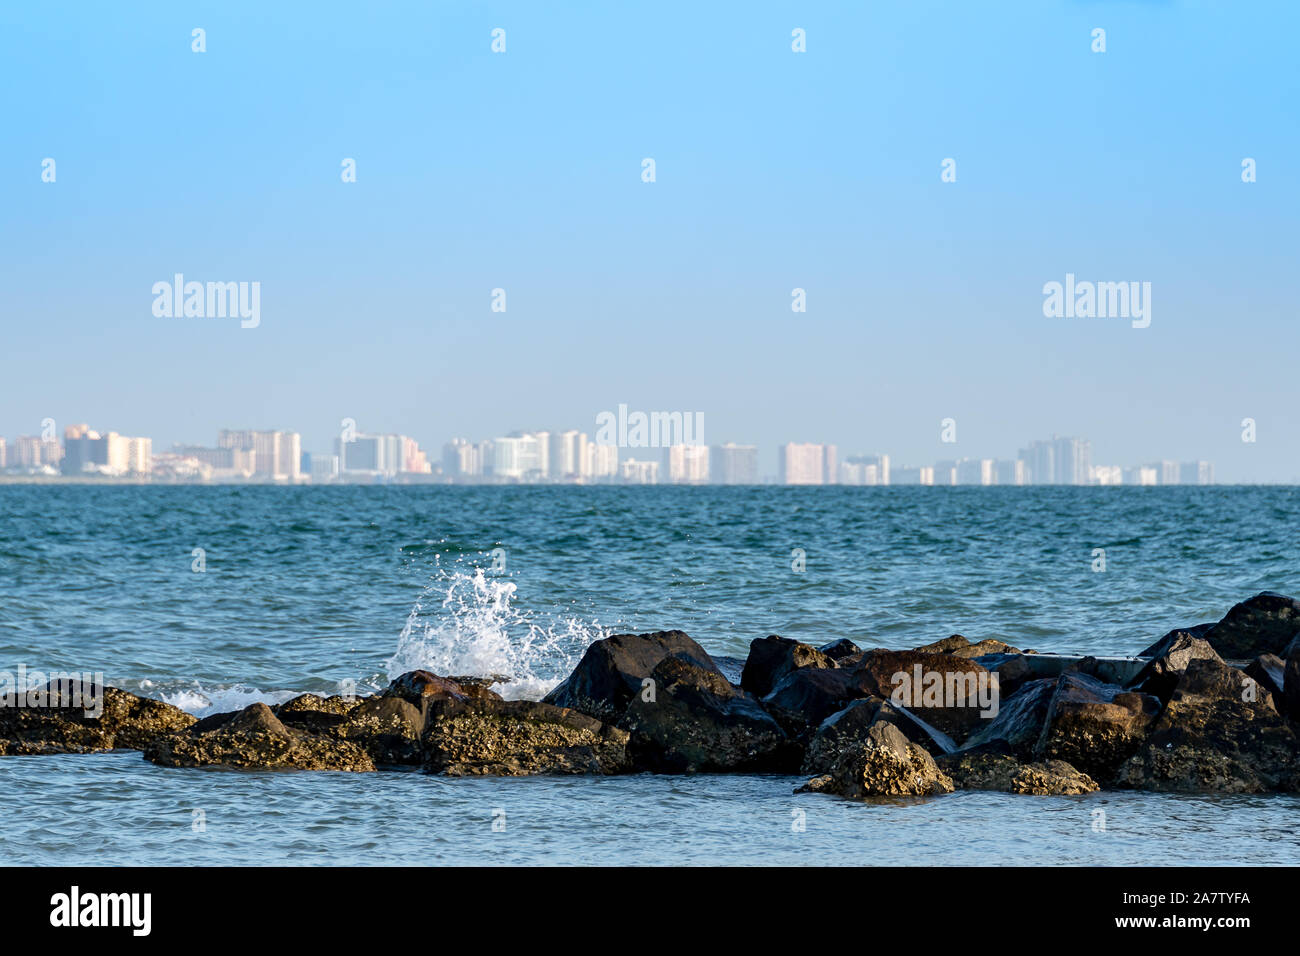 View of Clearwater, Florida with the waves crashing on the jetty Stock Photo